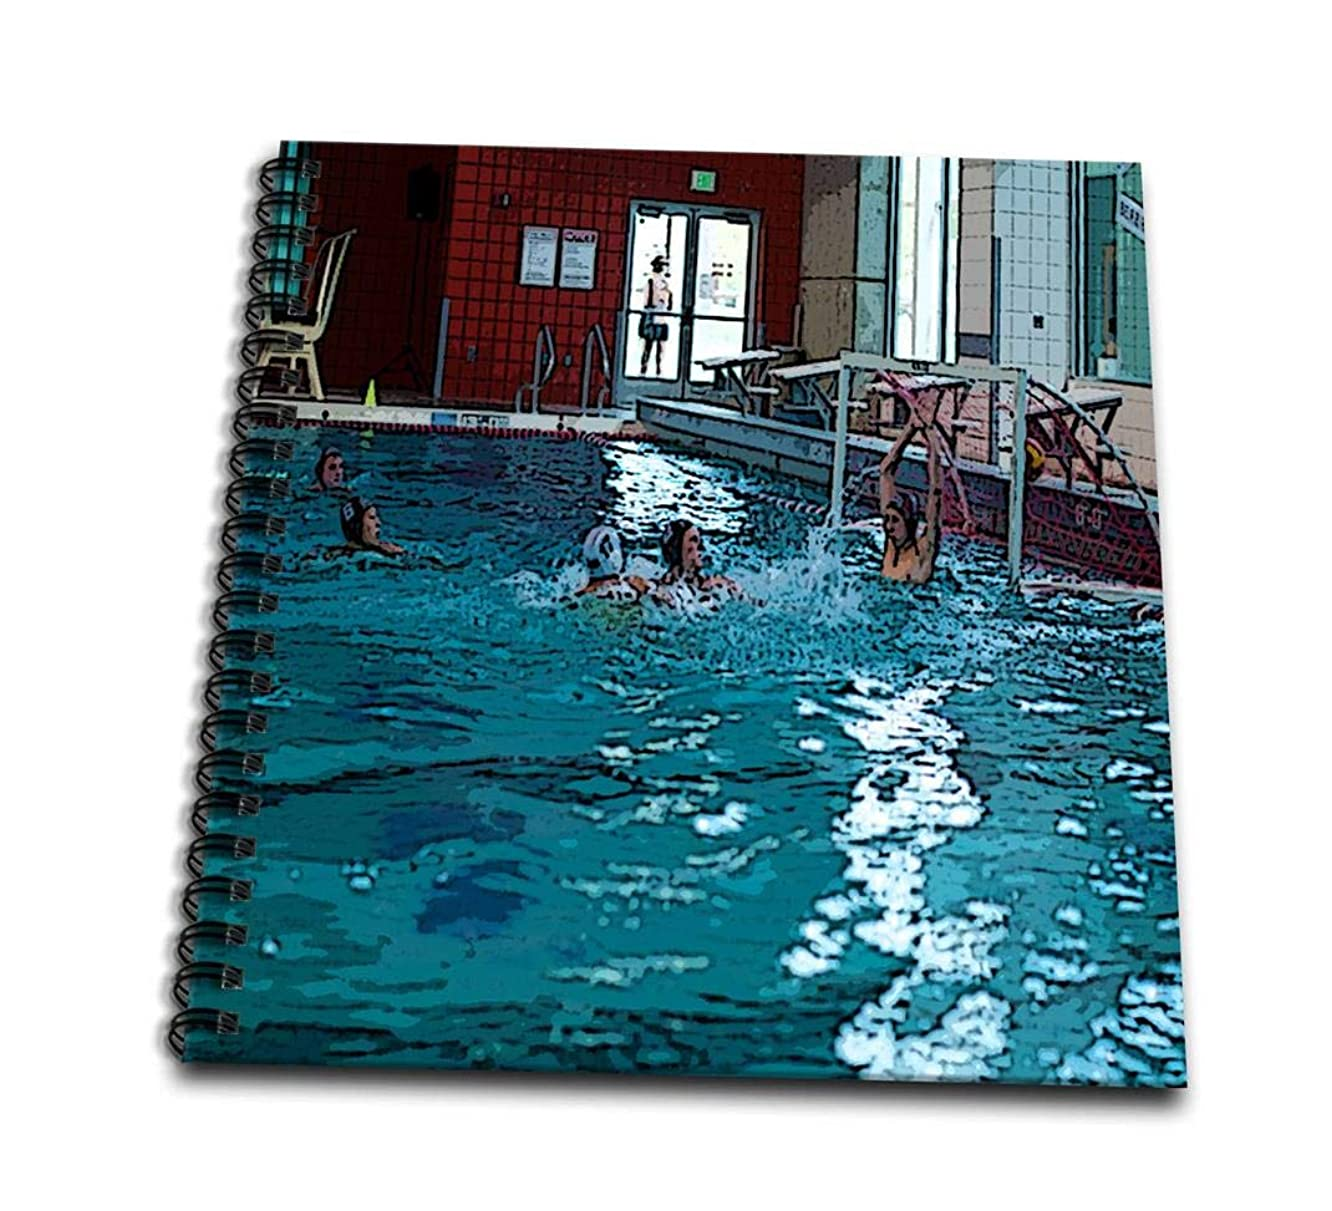 3dRose db_50530_2 Ball Going Into The Net at A Boys Water Polo Game in Cedar City, Utah with The Goalies Arms Raised-Memory Book, 12 by 12-Inch